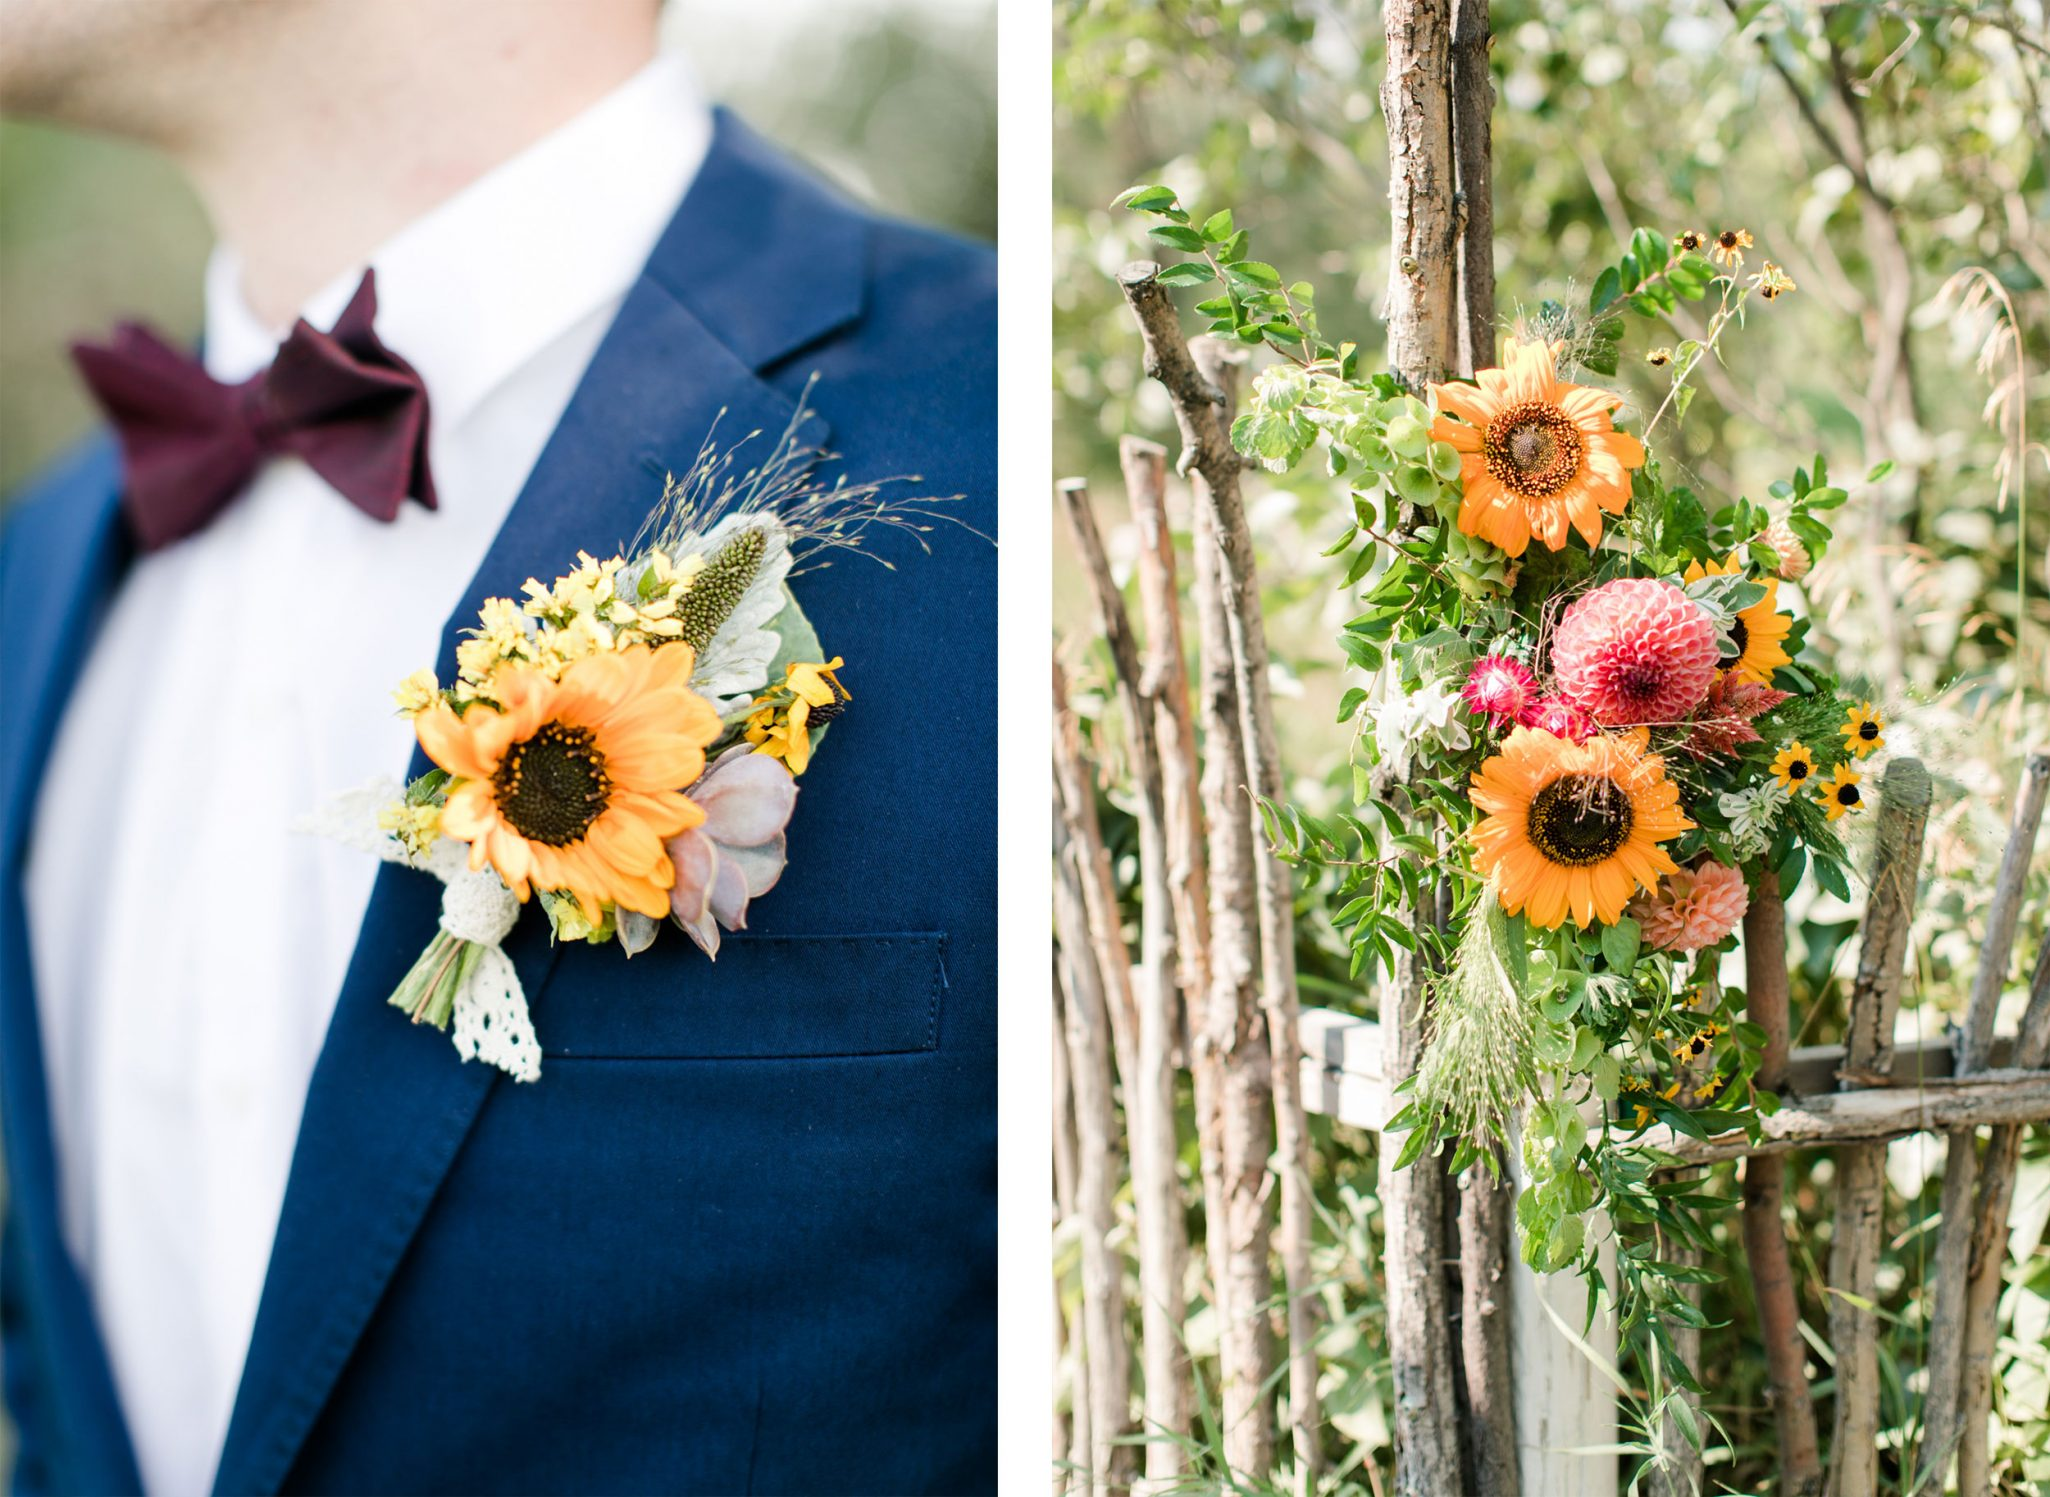 Florals | A Boho Garden Wedding in Colorado